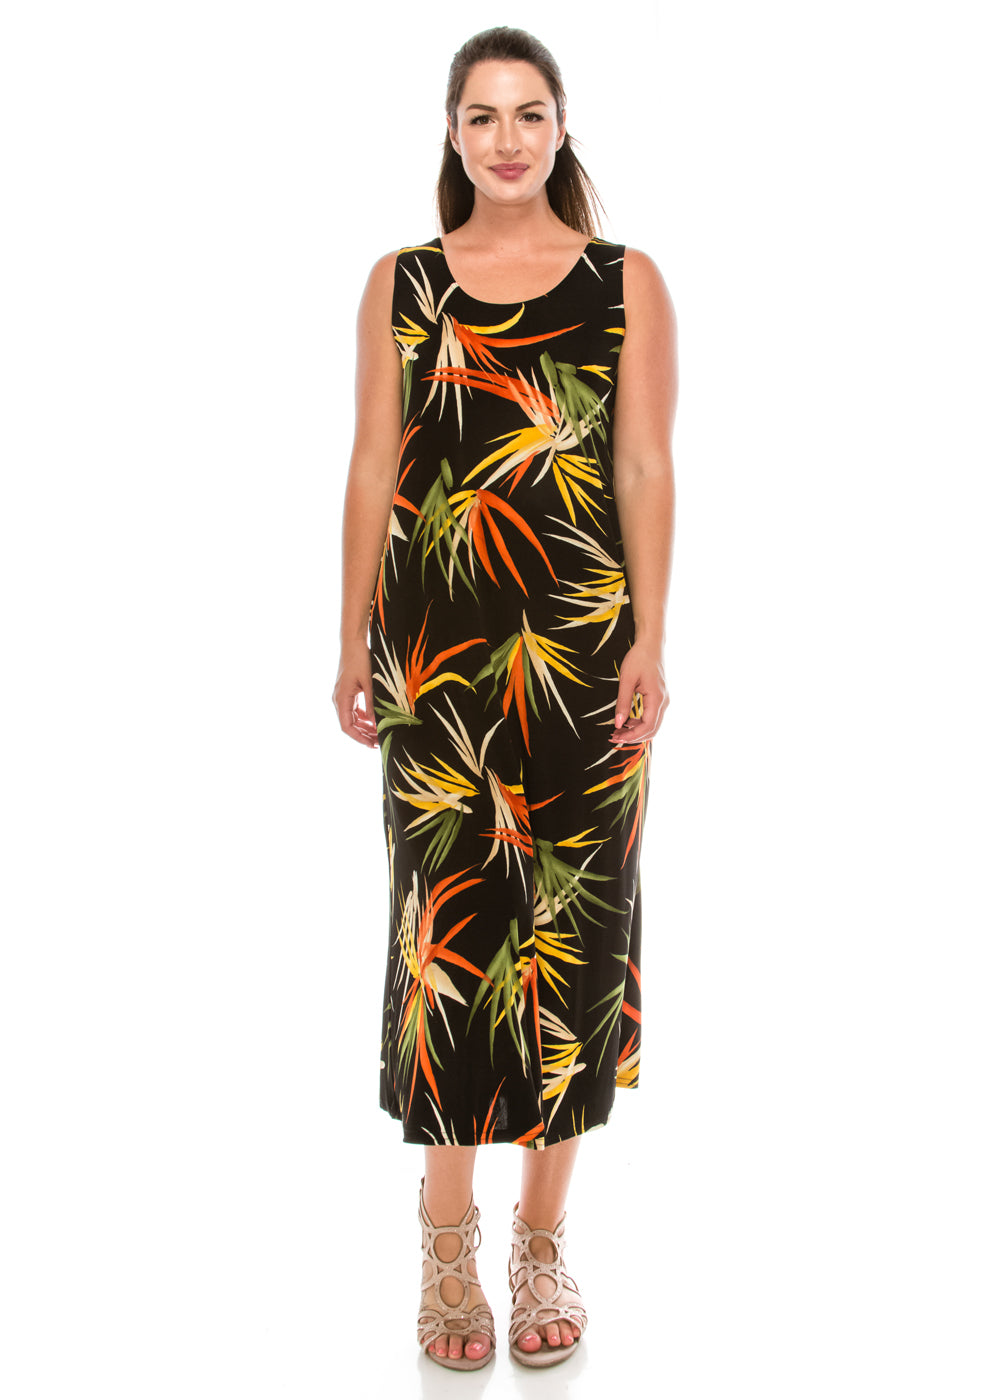 Jostar Women's Stretchy Long Tank Dress Print, 700BN-TP-W679 - Jostar Online